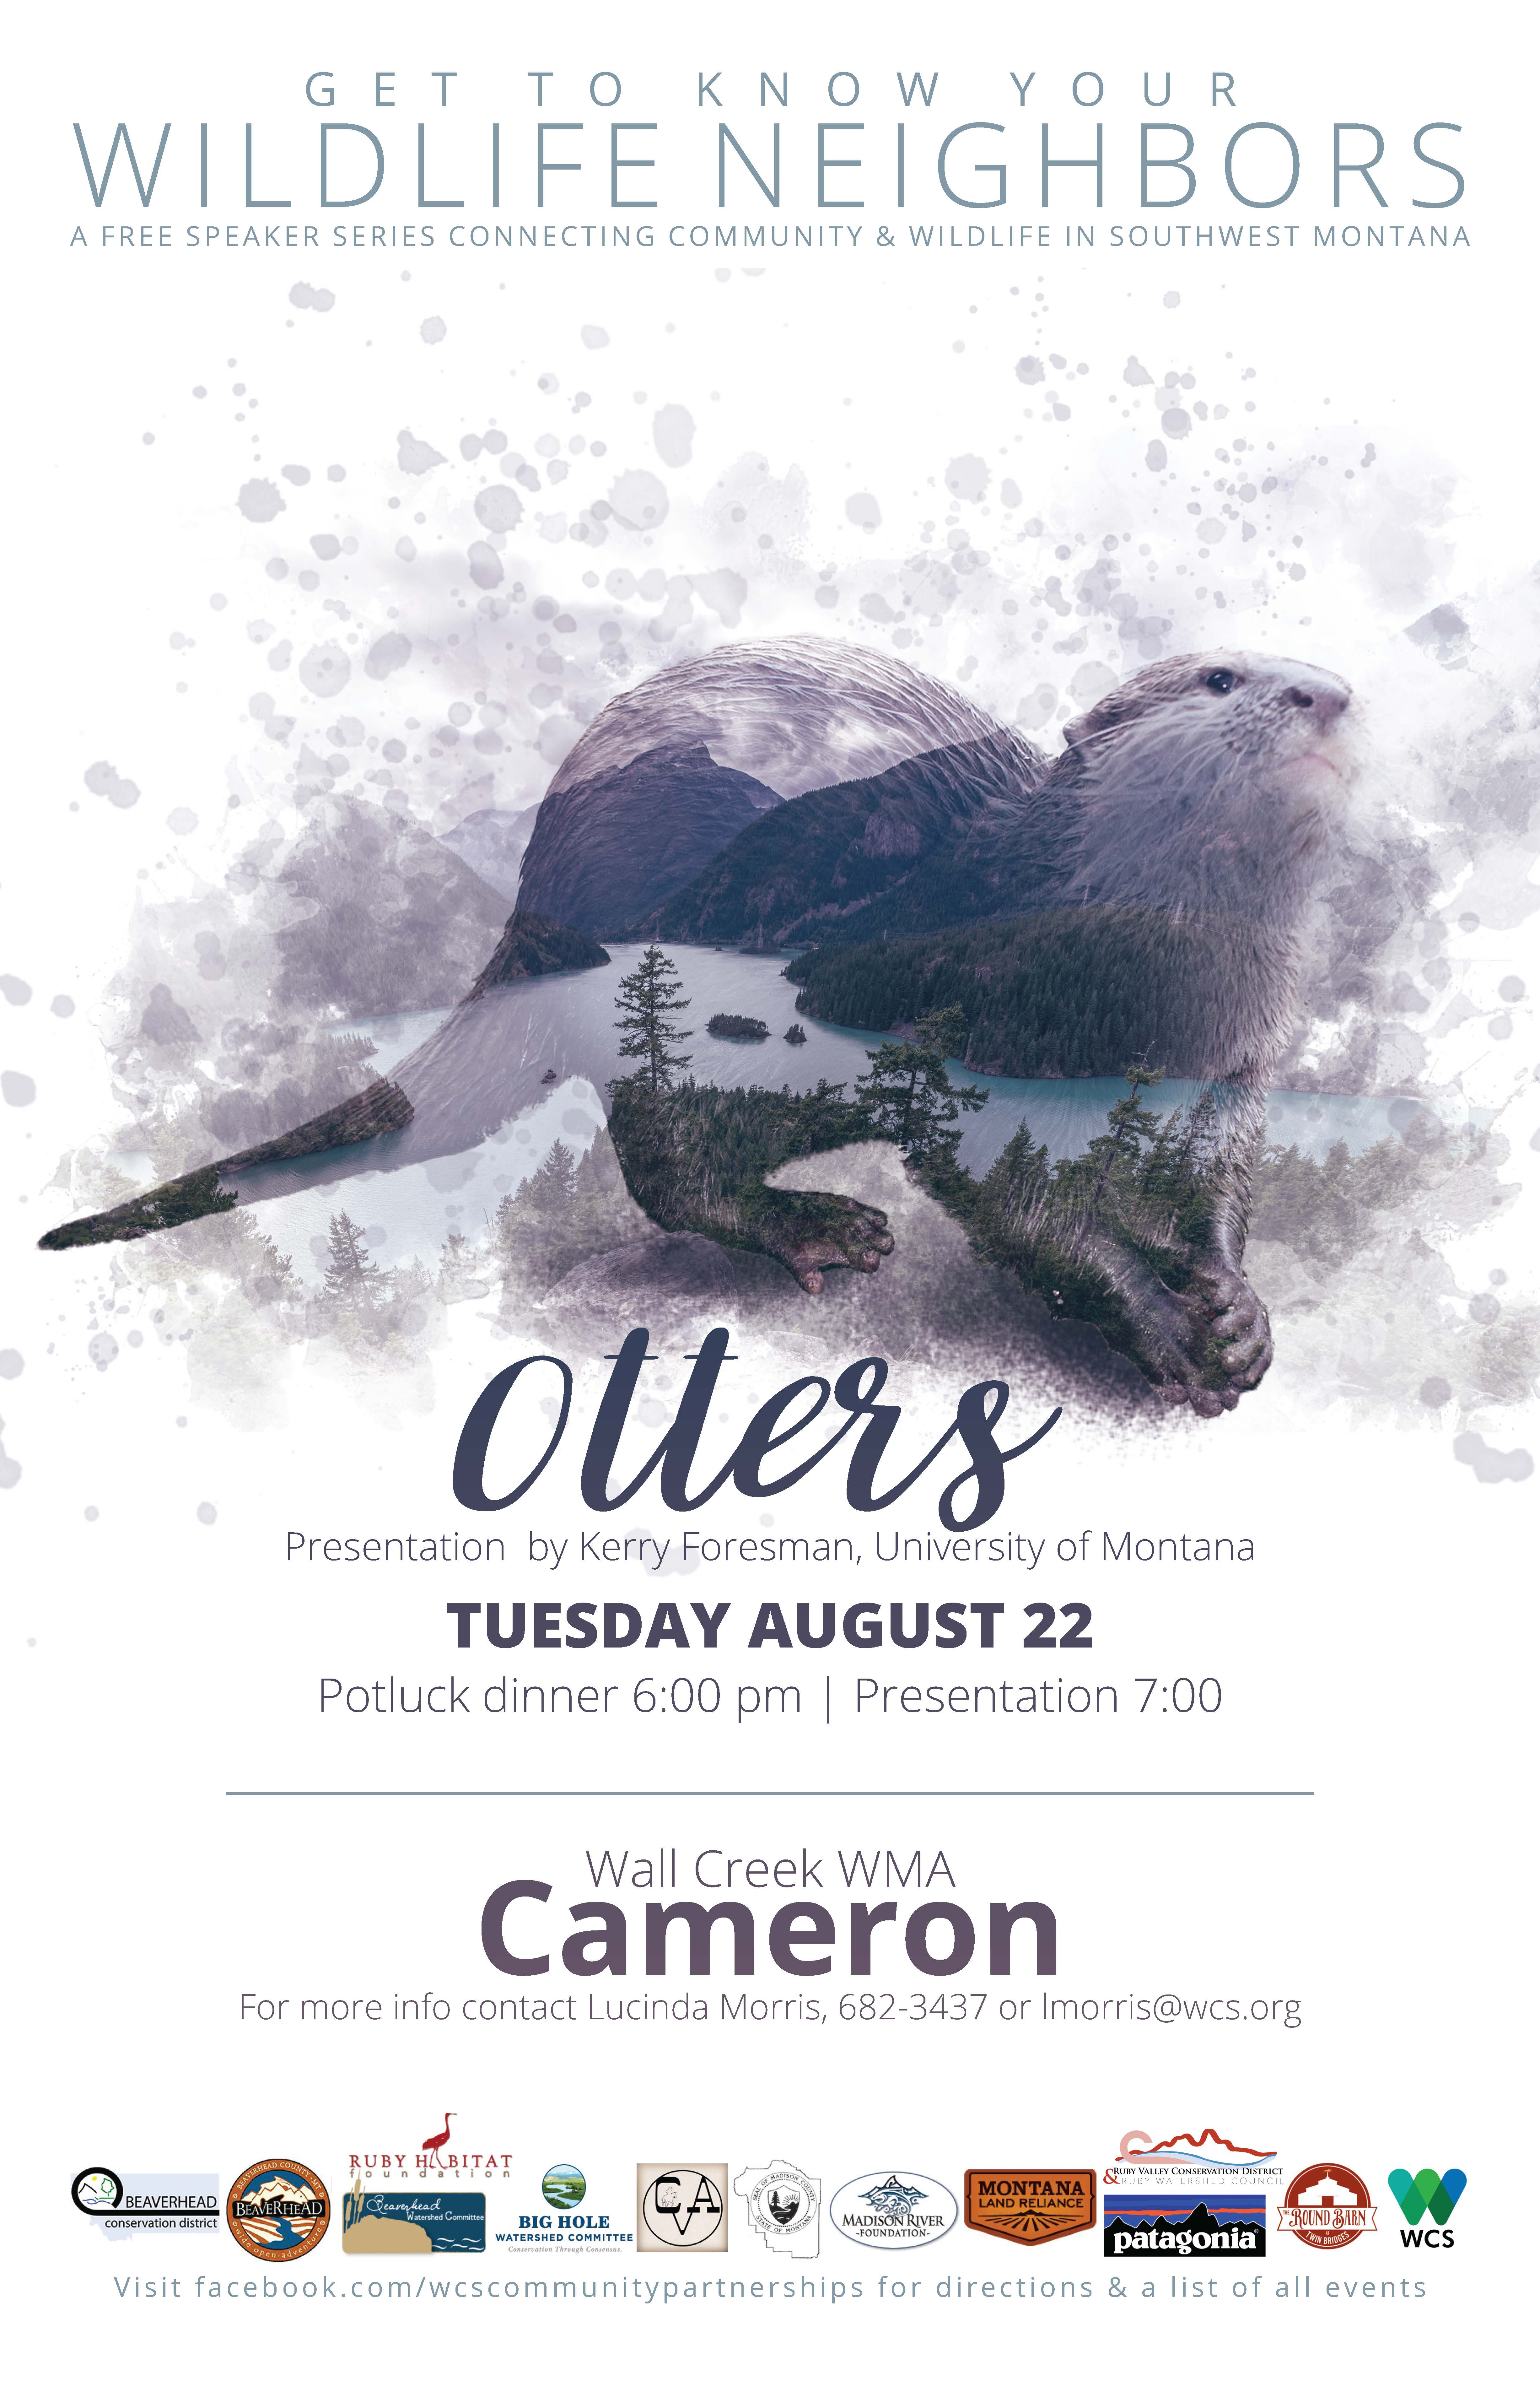 Wildlife Speaker Series Event - Otters @ Wall Creek Wildlife Management Area